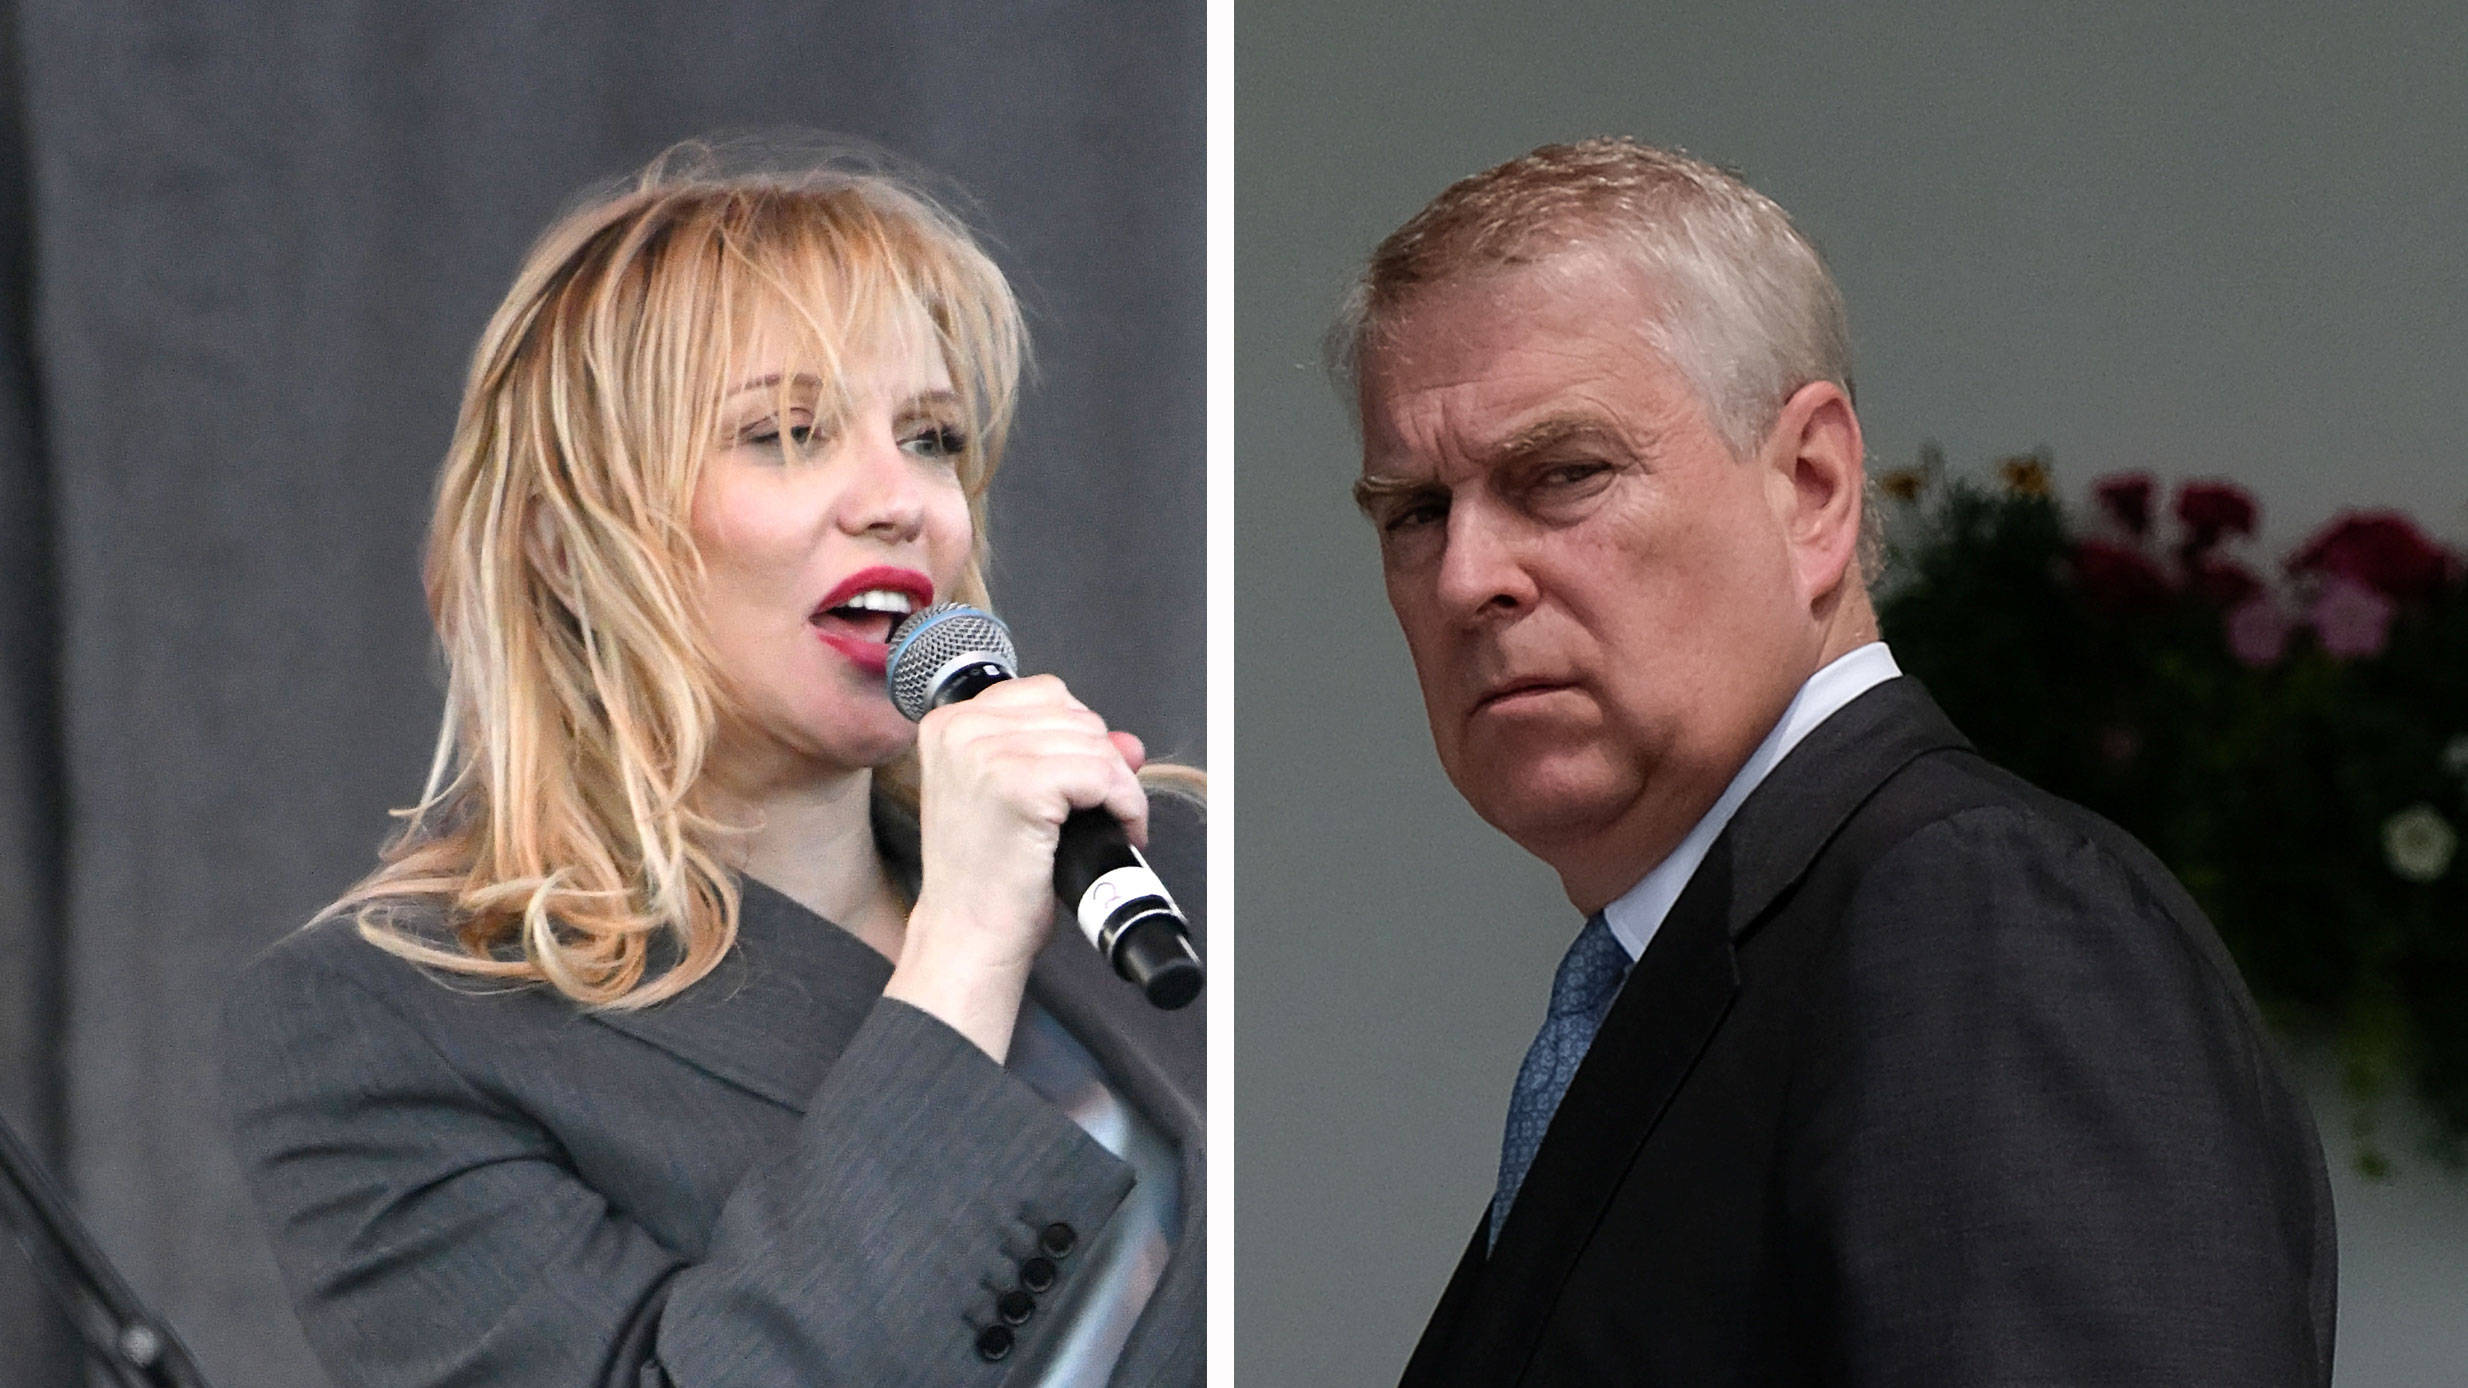 Courtney Love denies Prince Andrew turned up alone at her home at 1am looking for a good time